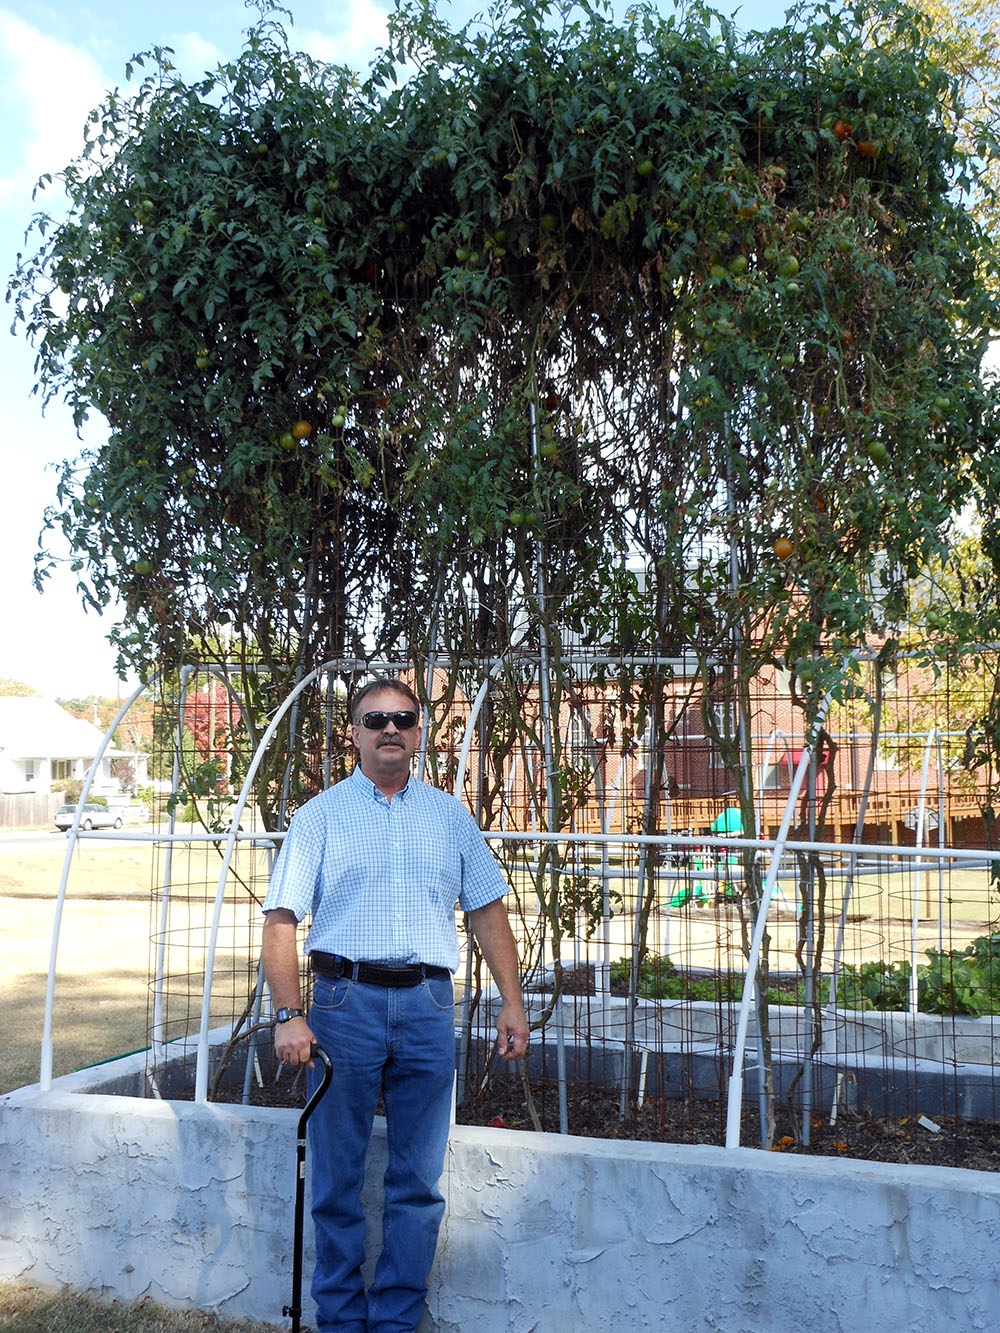 10-19-2016 Me and Tomato Plants at St Pauls